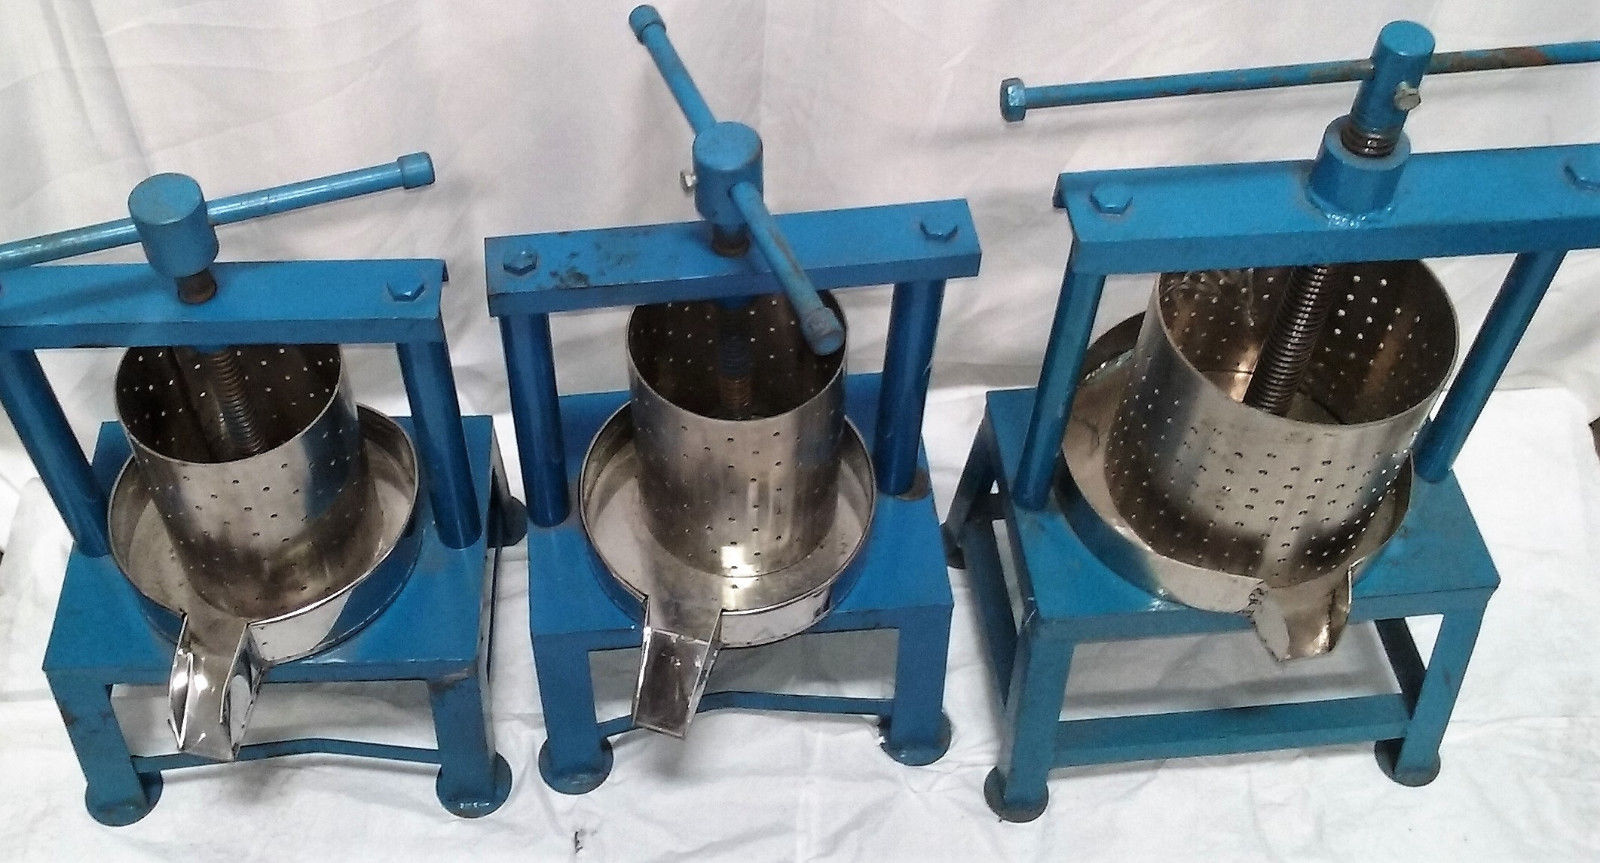 Industrial Juicers Lot Of 3 2 small and 1 large Commercial Kitchen Equipment